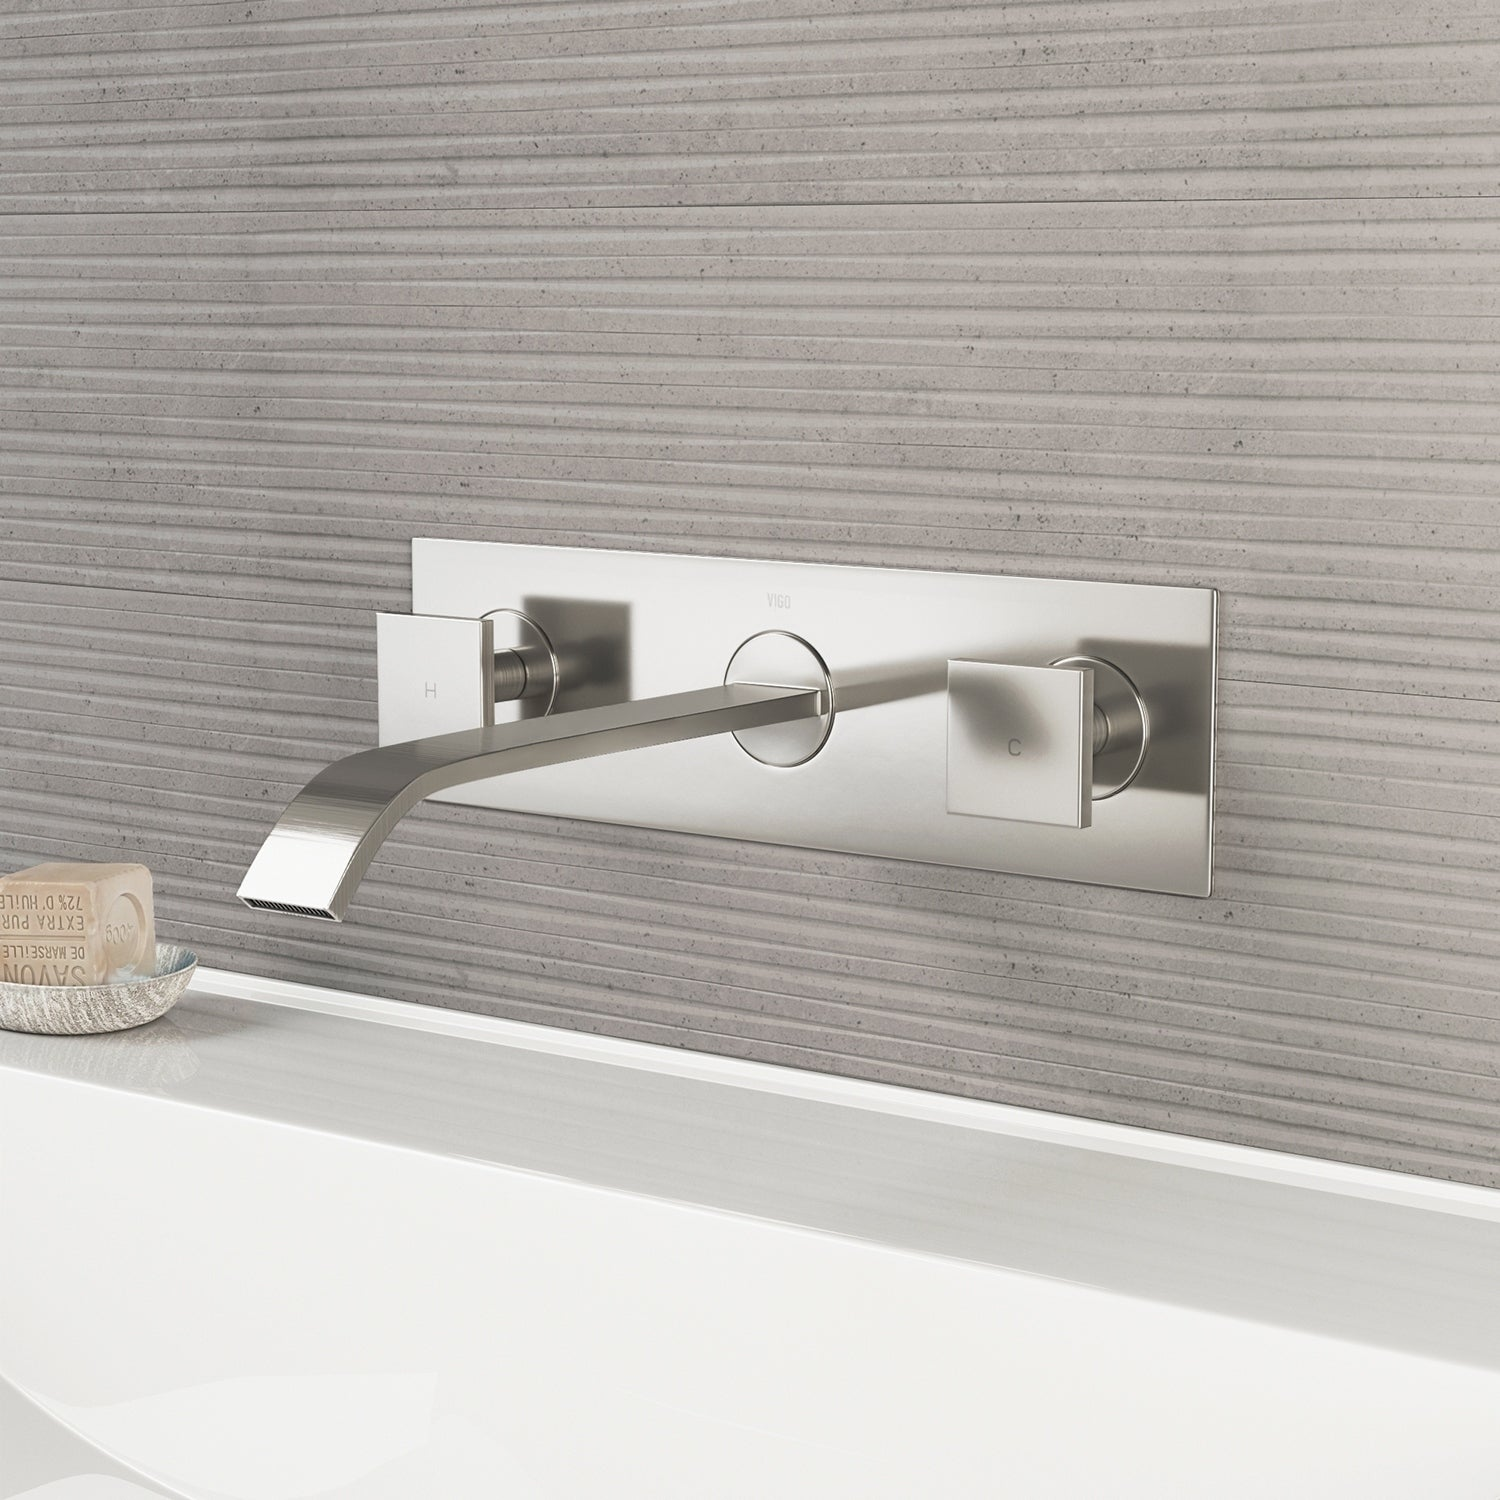 VIGO Titus Bathroom Wall Mount Faucet In Brushed Nickel   Free Shipping  Today   Overstock.com   15741896